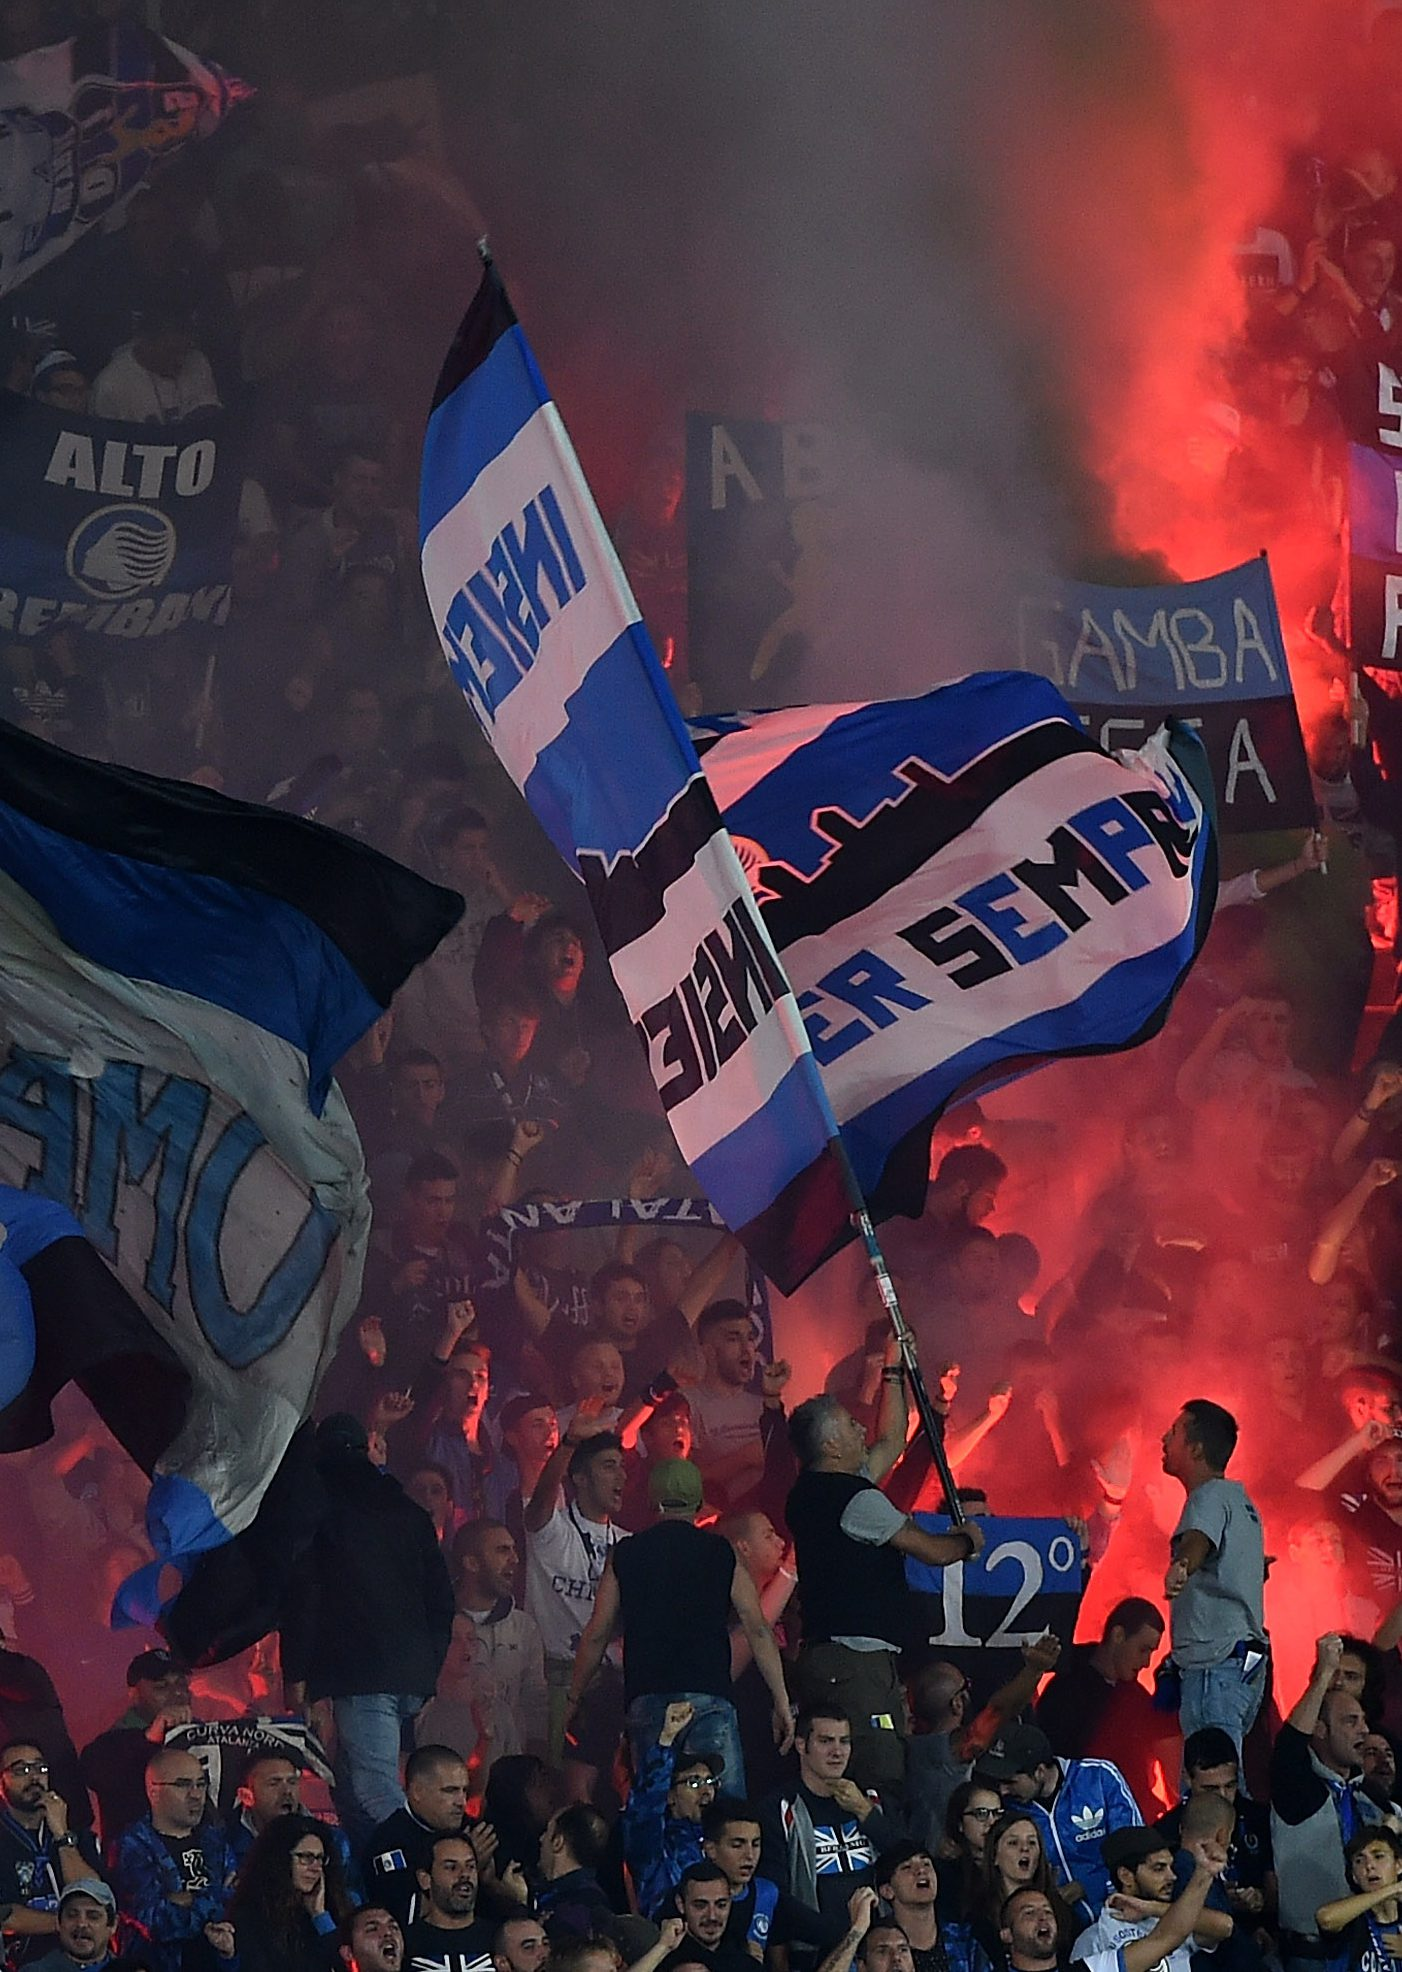 BERGAMO, ITALY - SEPTEMBER 21: Fans of Atalanta show their support during the Serie A match between Atalanta BC and US Citta di Palermo at Stadio Atleti Azzurri d'Italia on September 21, 2016 in Bergamo, Italy. (Photo by Tullio M. Puglia/Getty Images)